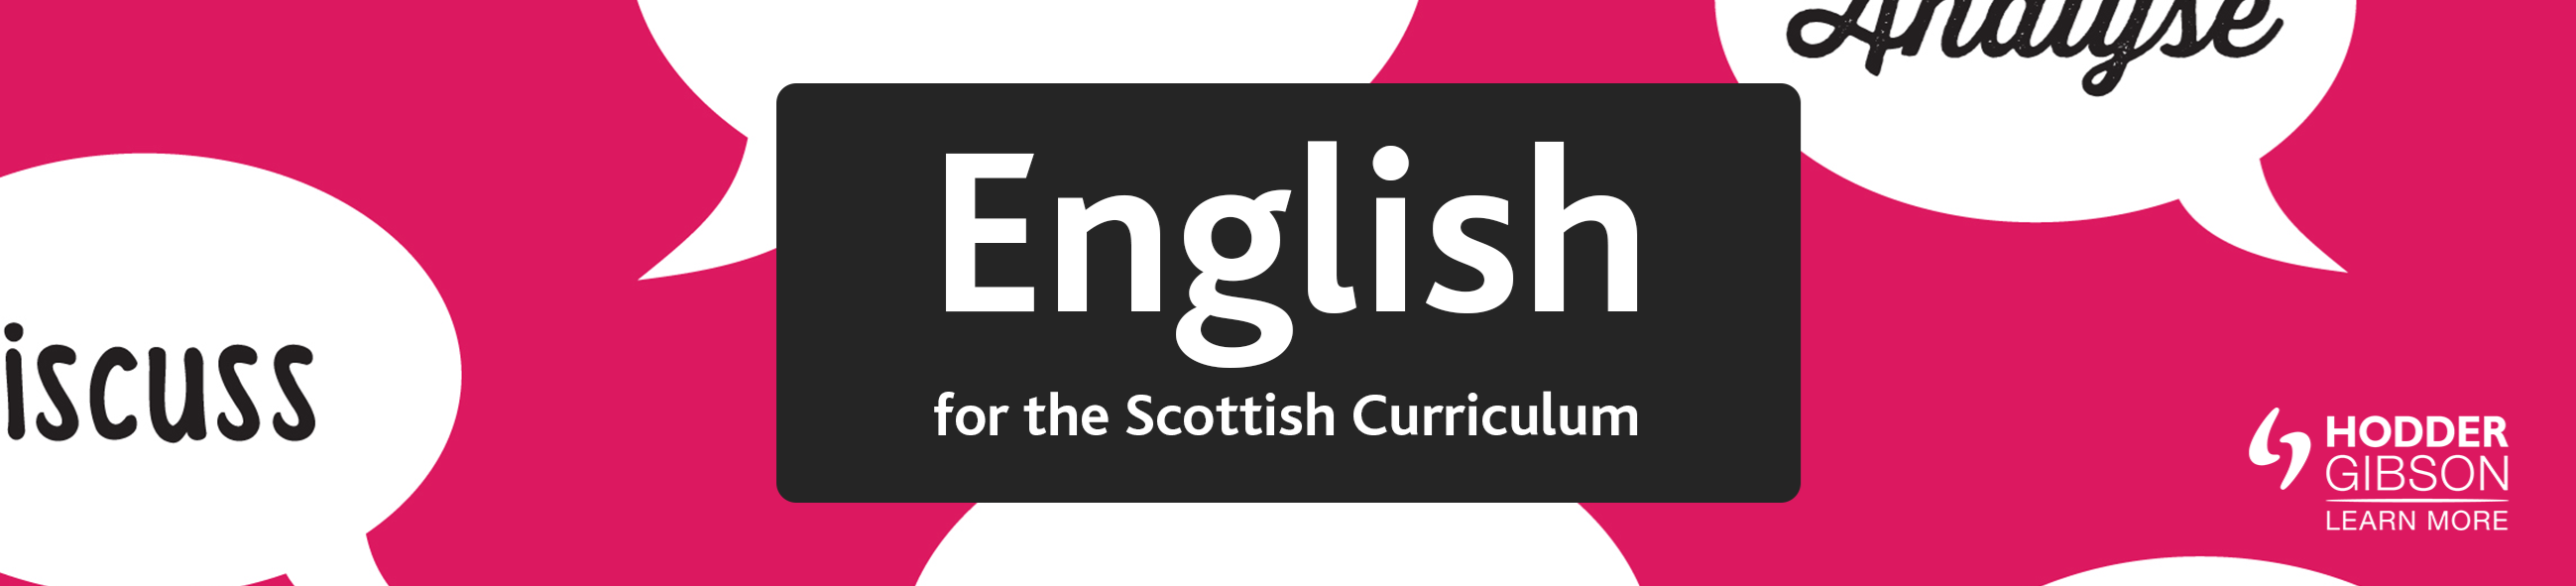 Hodder Education Scottish Curriculum Textbooks Resources